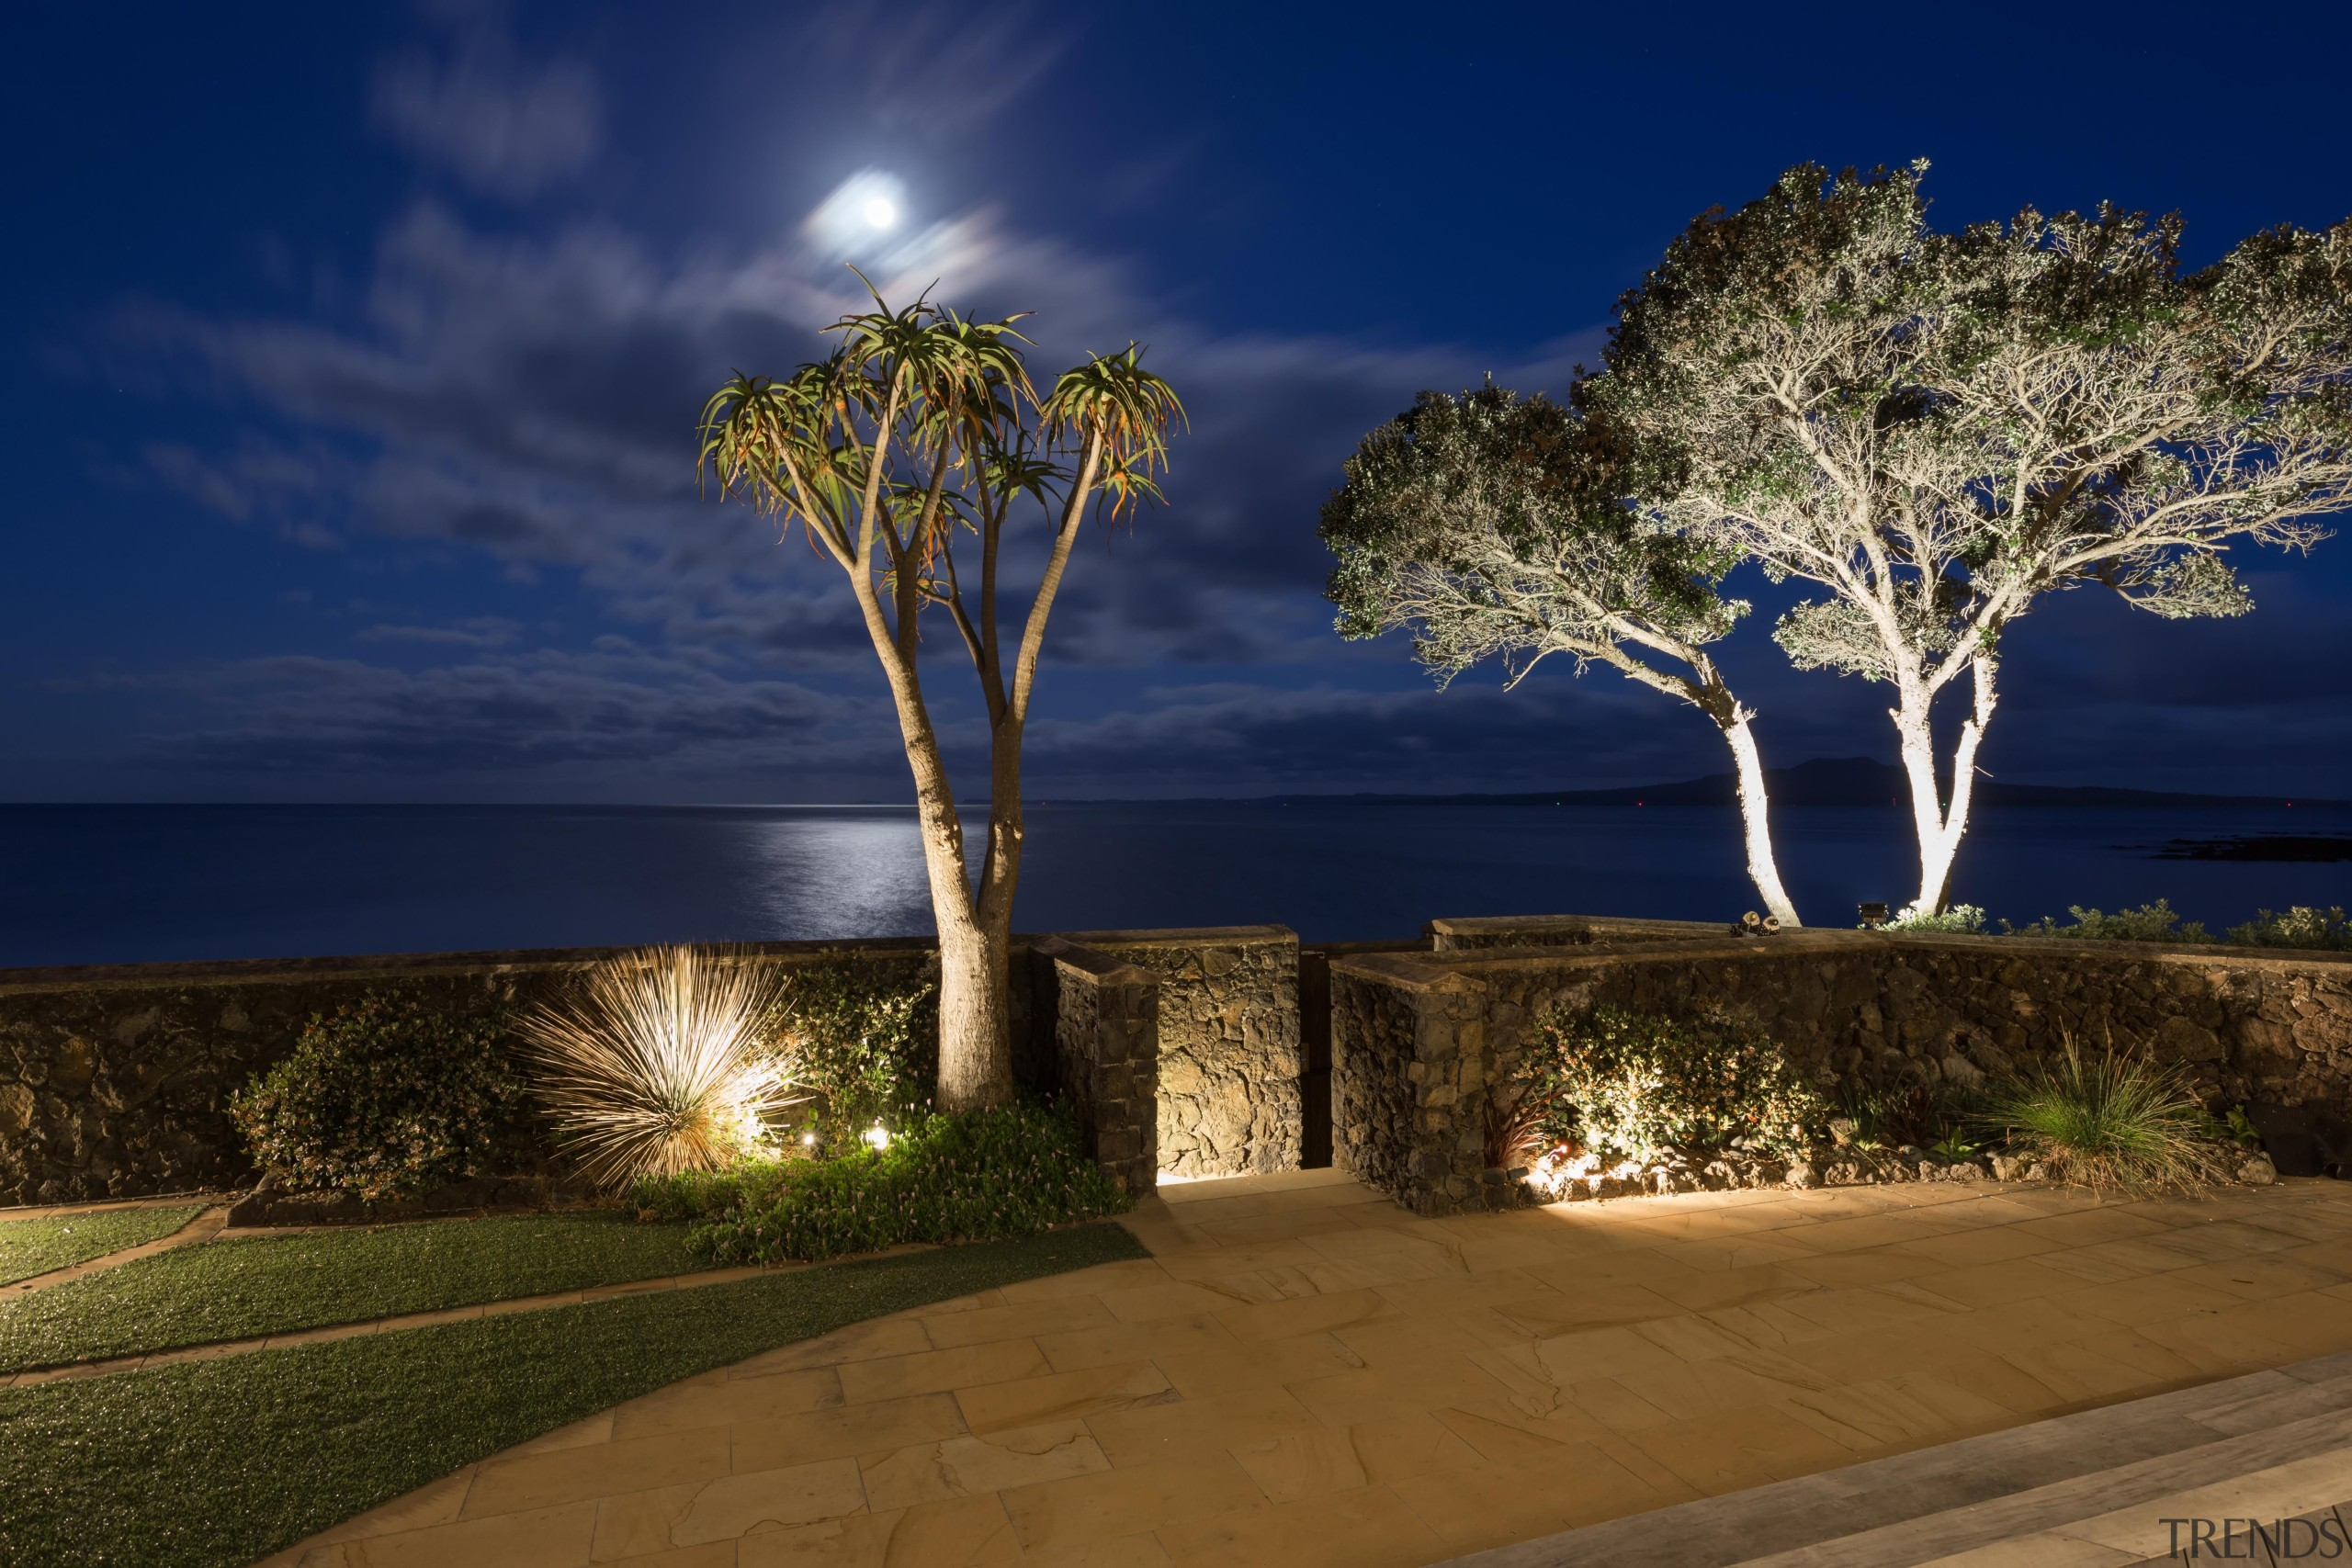 Img9036 - architecture | computer wallpaper | estate architecture, computer wallpaper, estate, home, landscape, landscape lighting, light, lighting, night, plant, property, real estate, sky, sunlight, tree, blue, brown